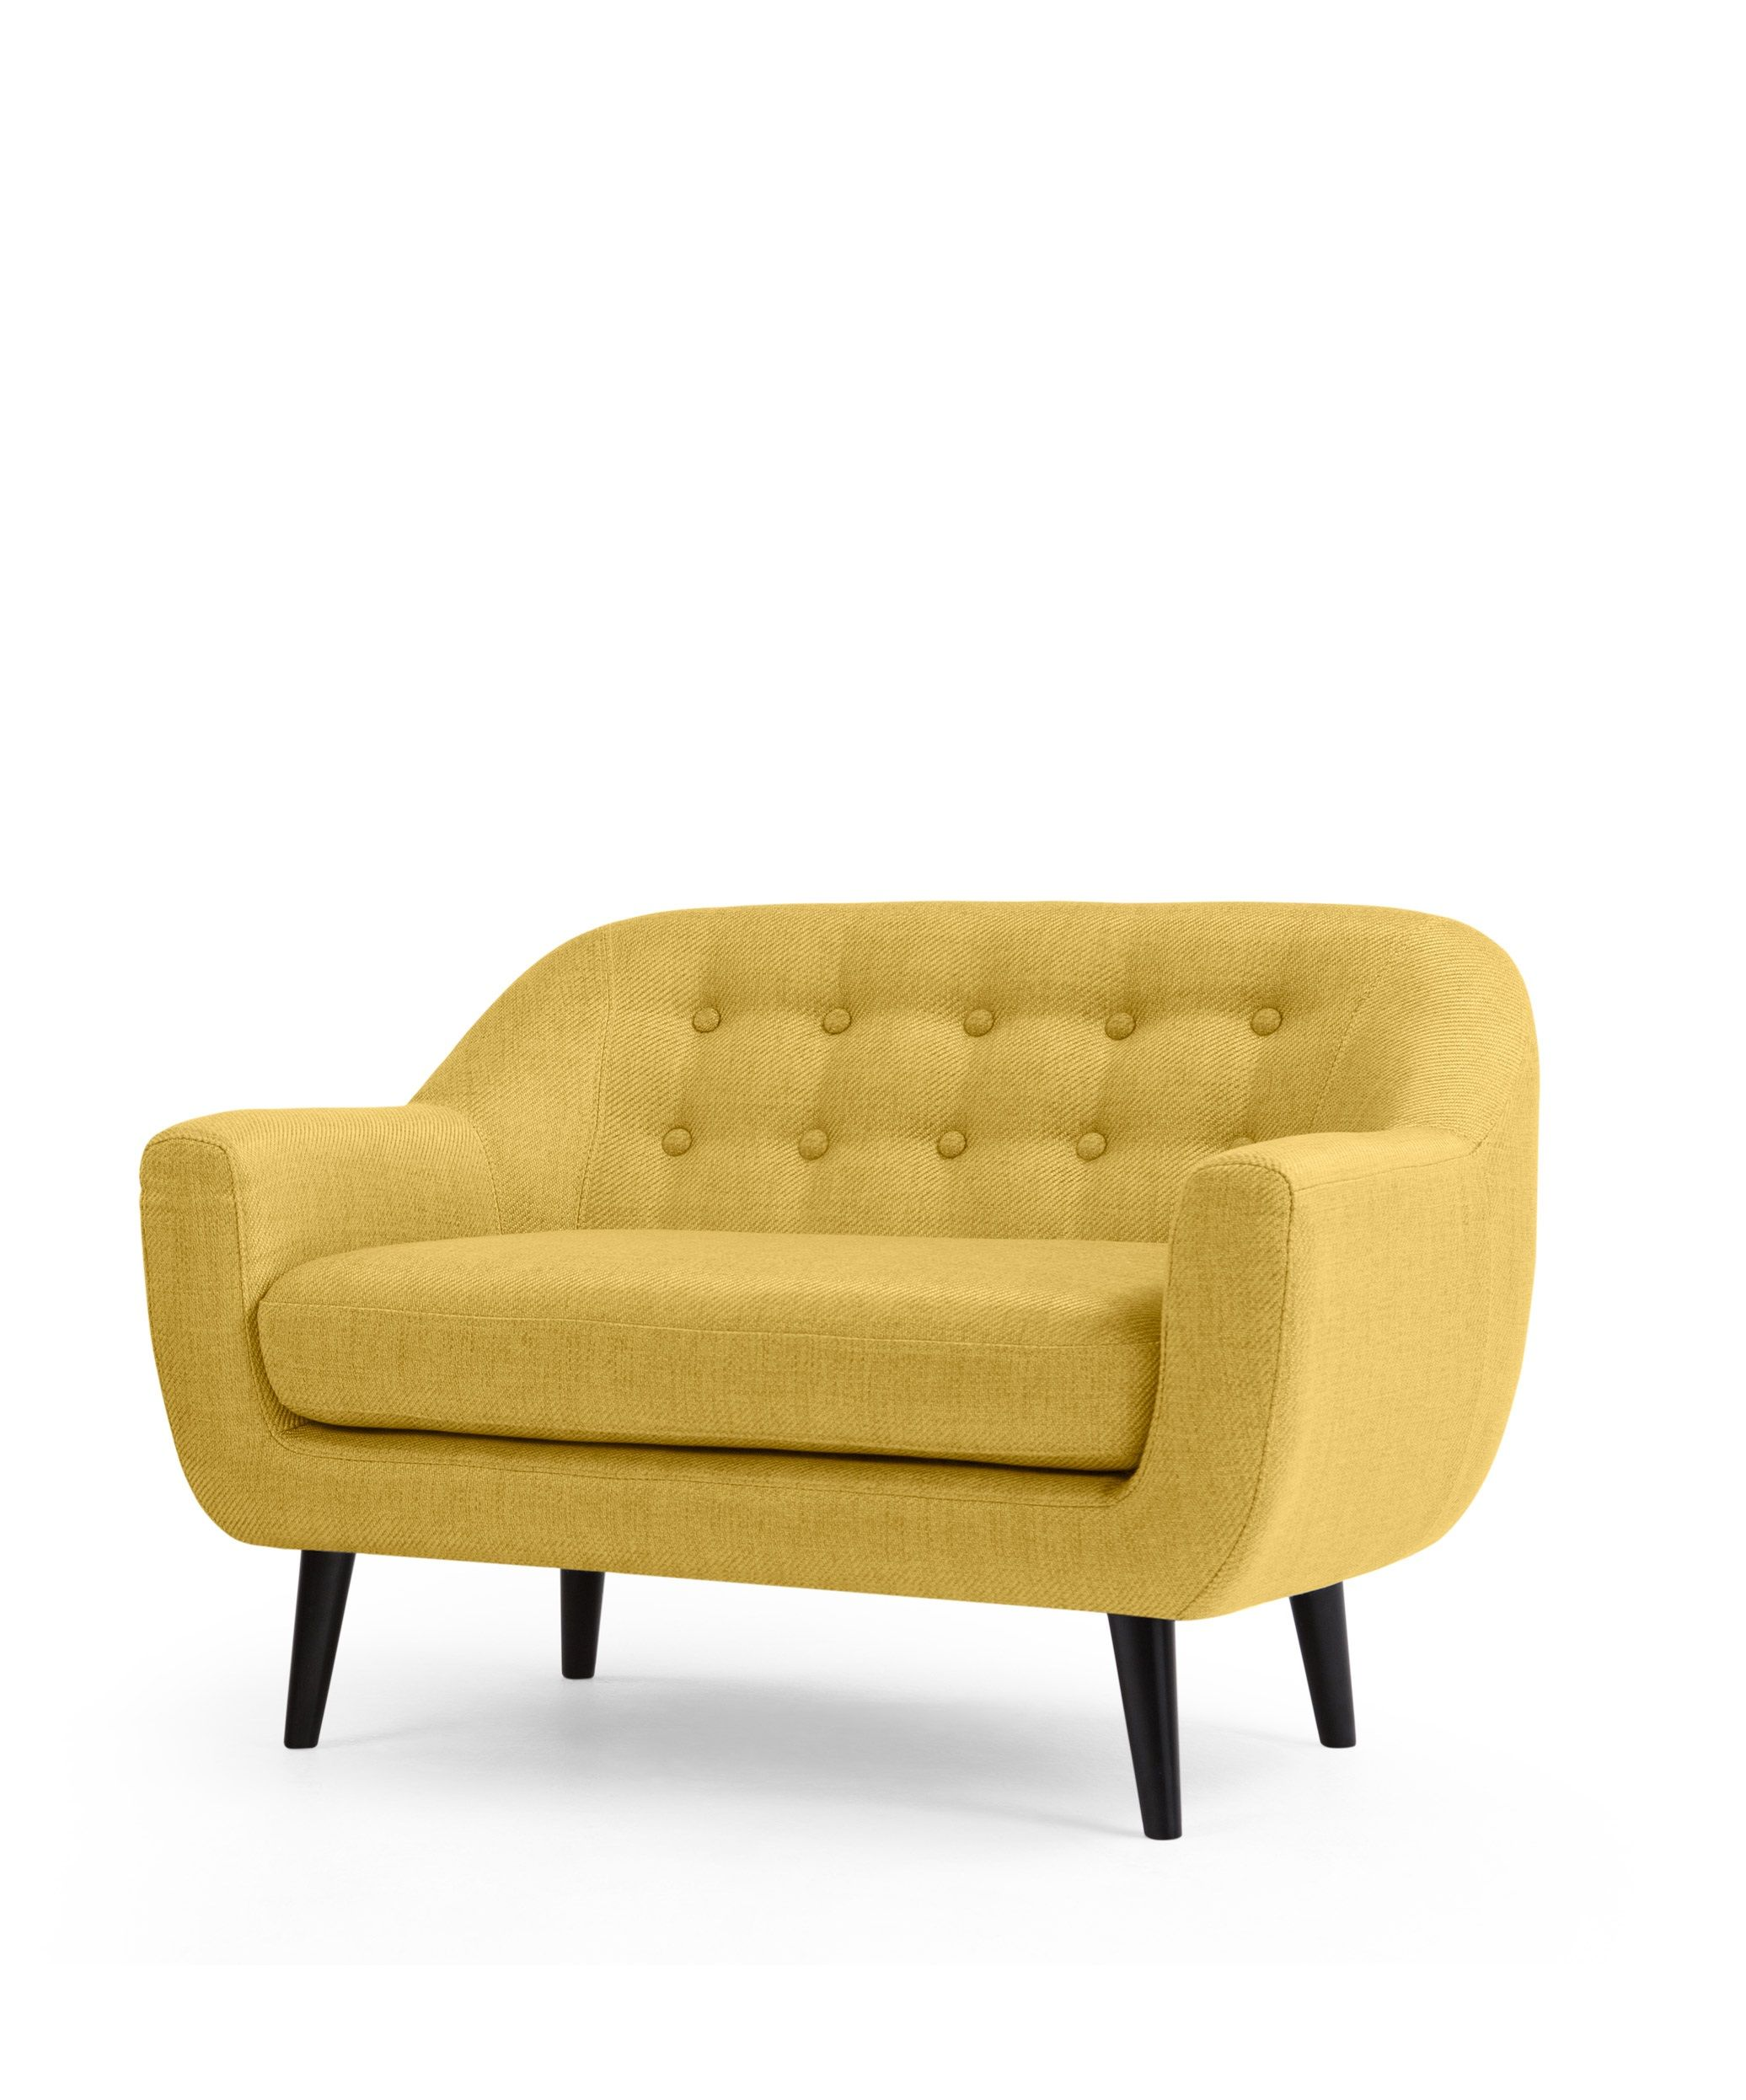 small 2 seater sofa french country ideas mini ritchie ochre yellow living rooms